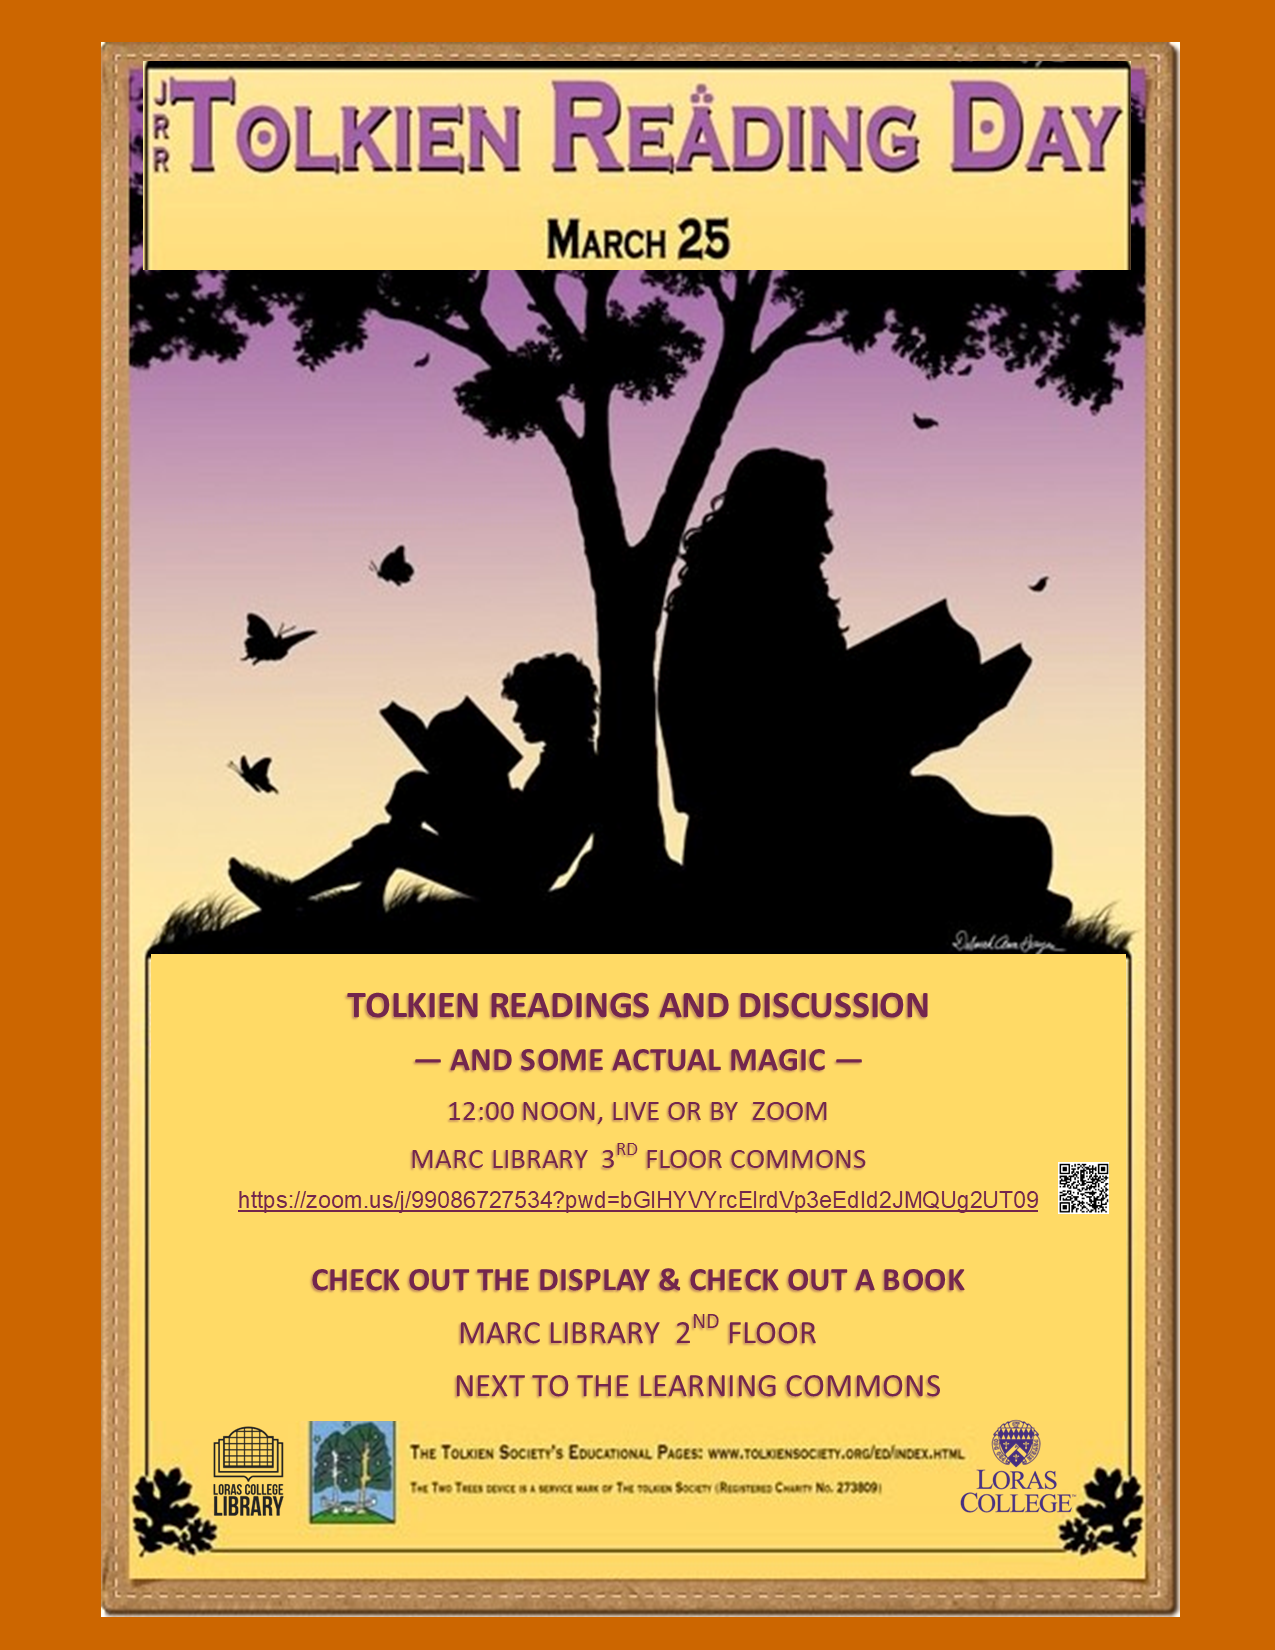 Tolkien reading day poster